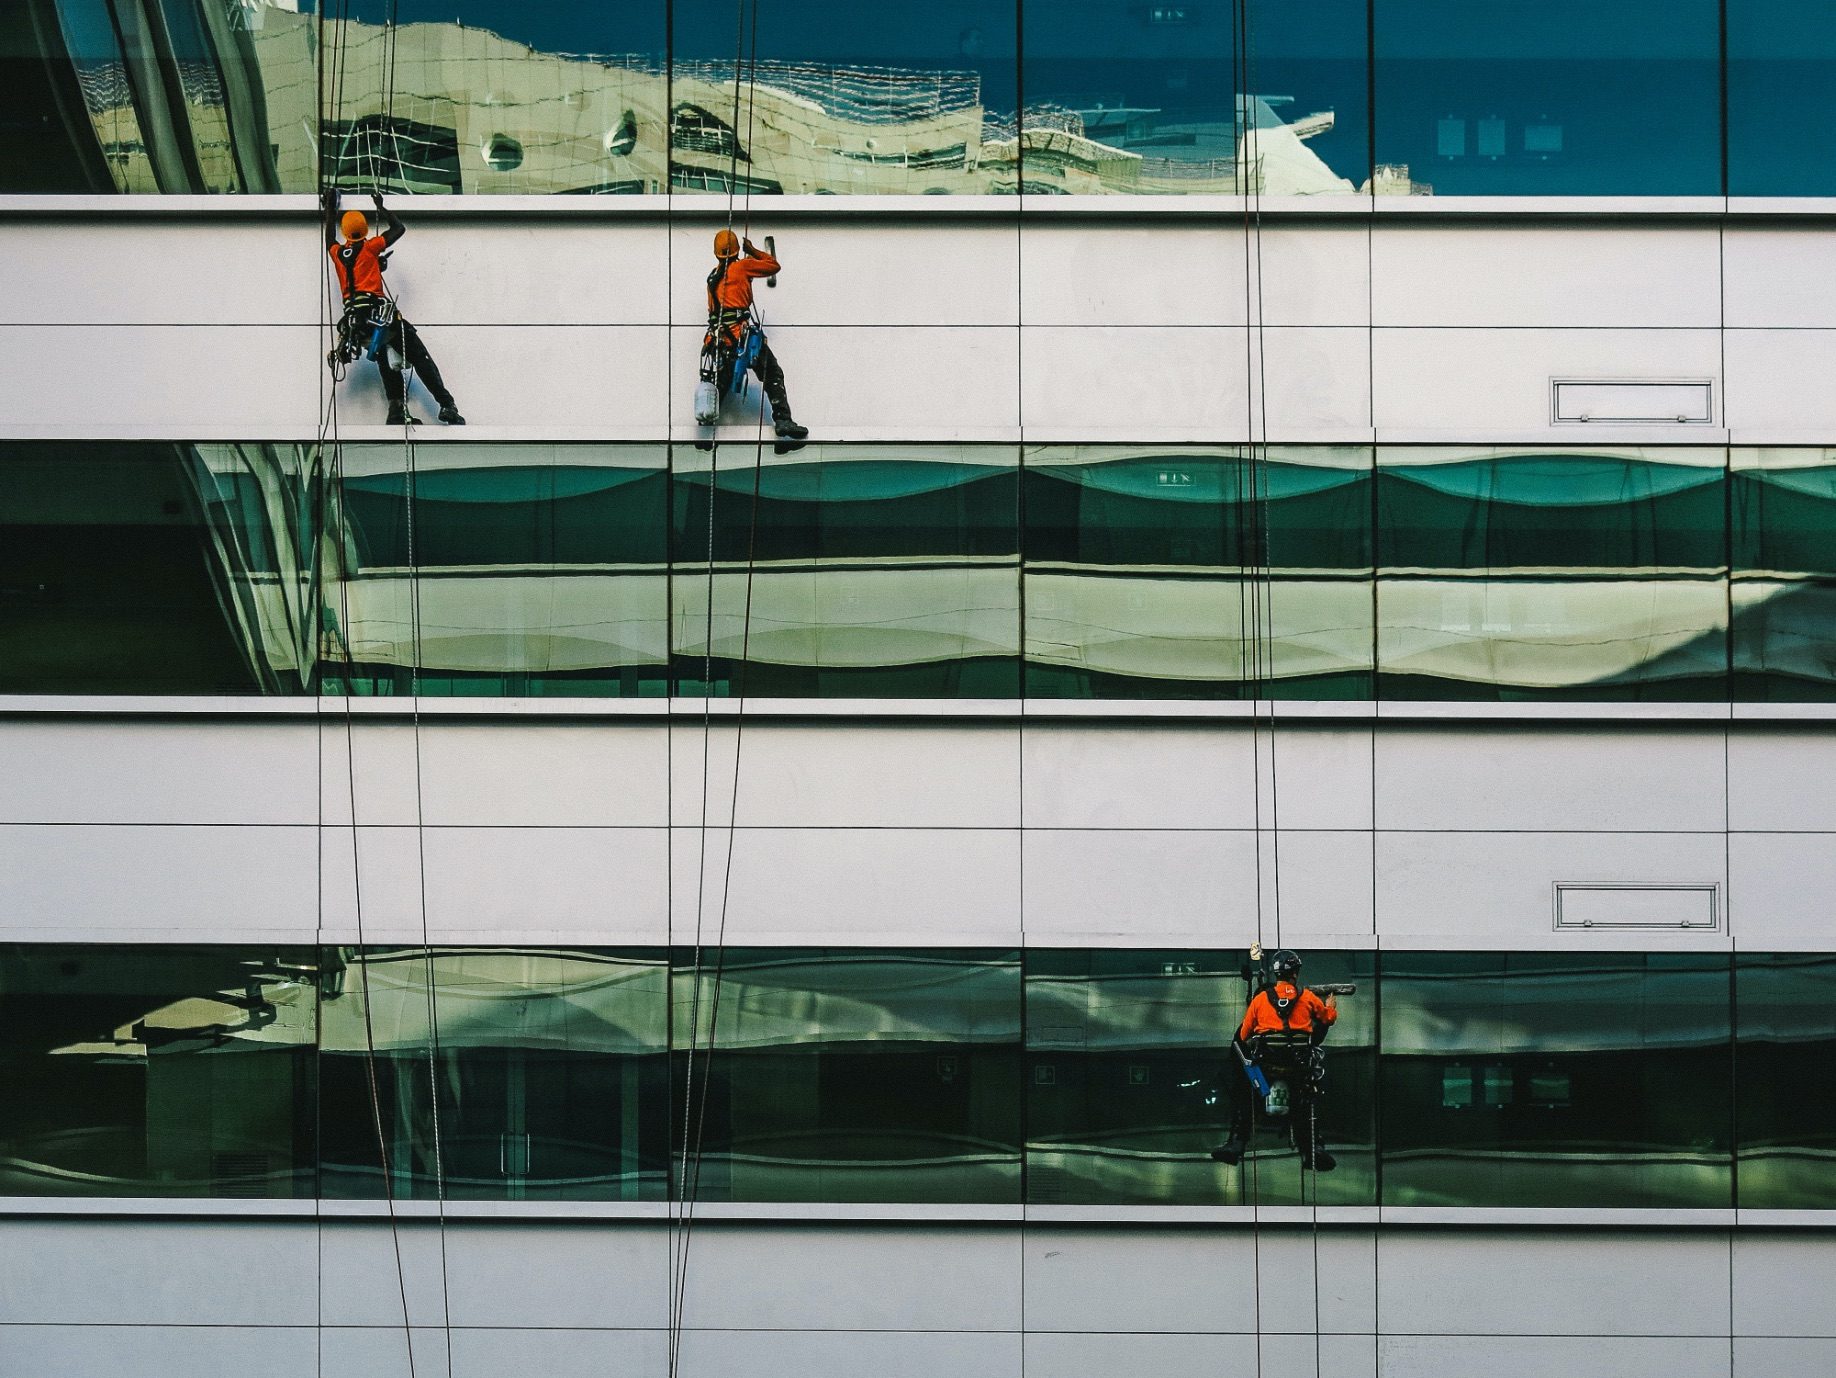 Maintenance crew cleaning a building